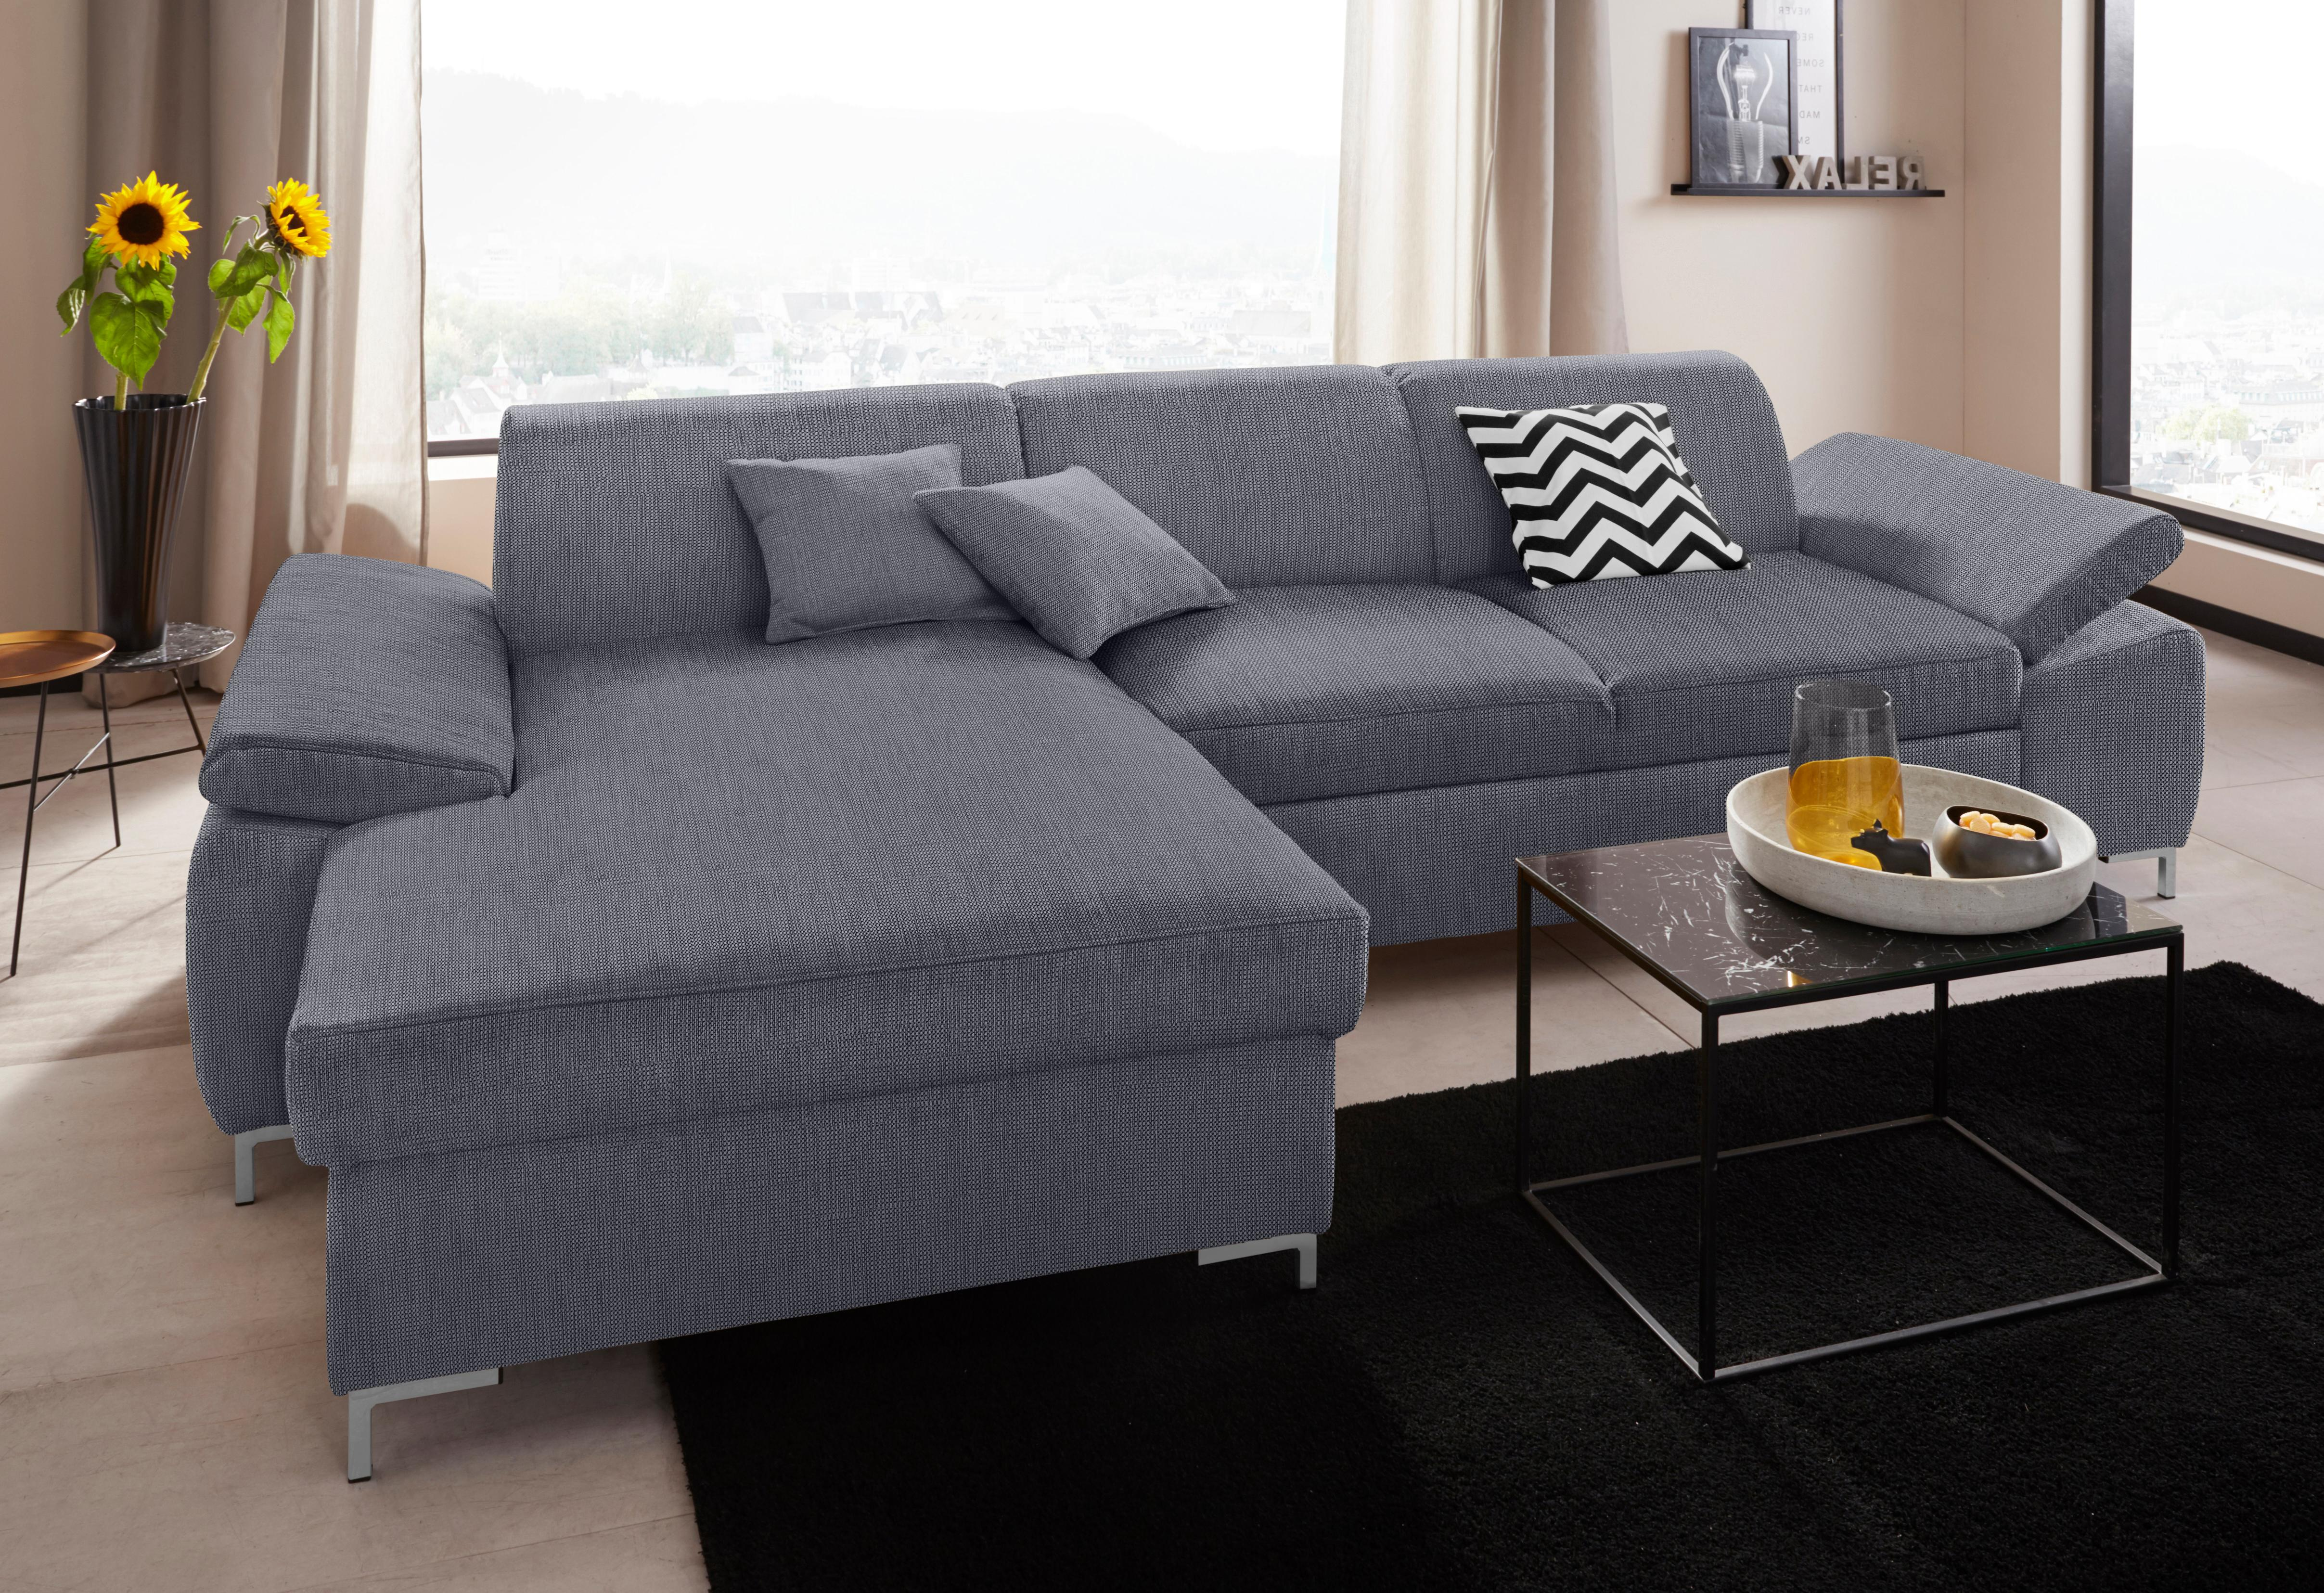 DOMO collection Ecksofa | Wohnzimmer > Sofas & Couches > Ecksofas & Eckcouches | Grau | Domo Collection